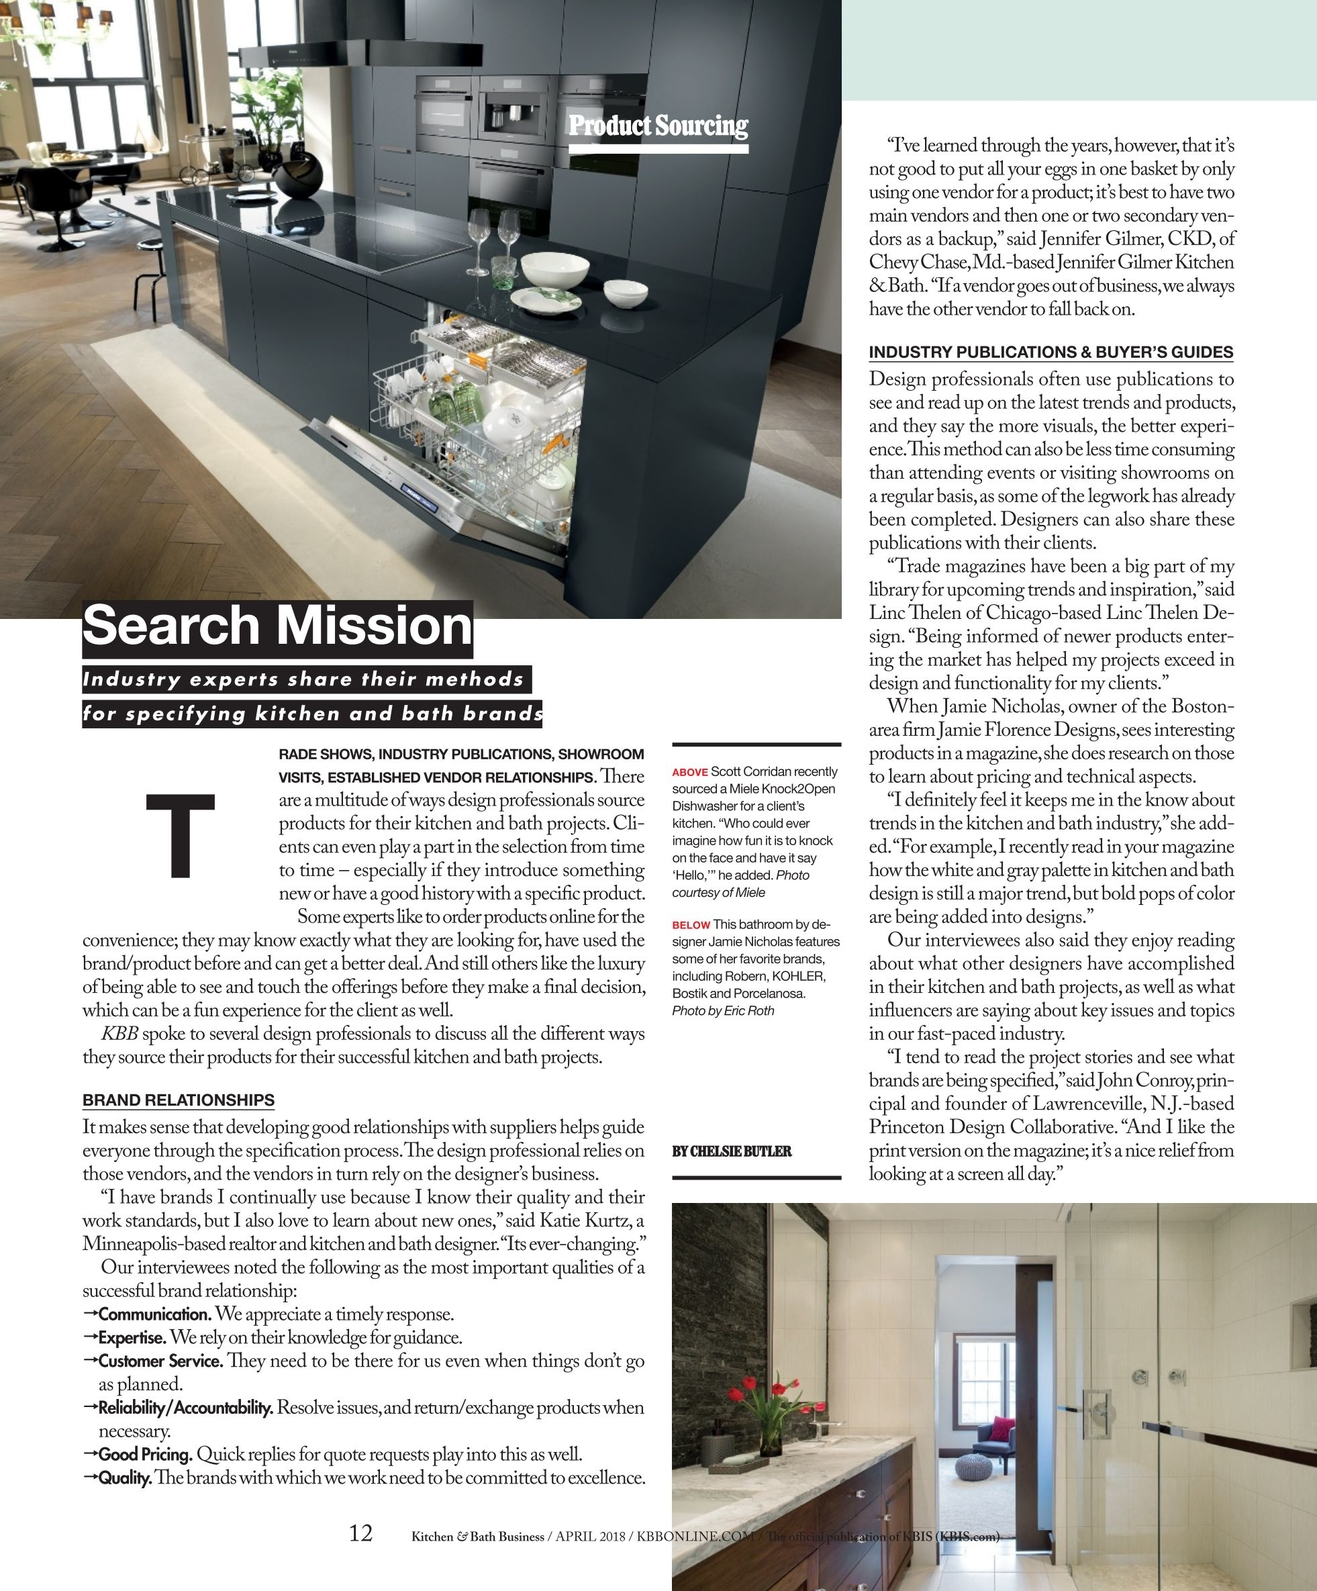 Kitchen & Bath Business - April 2018